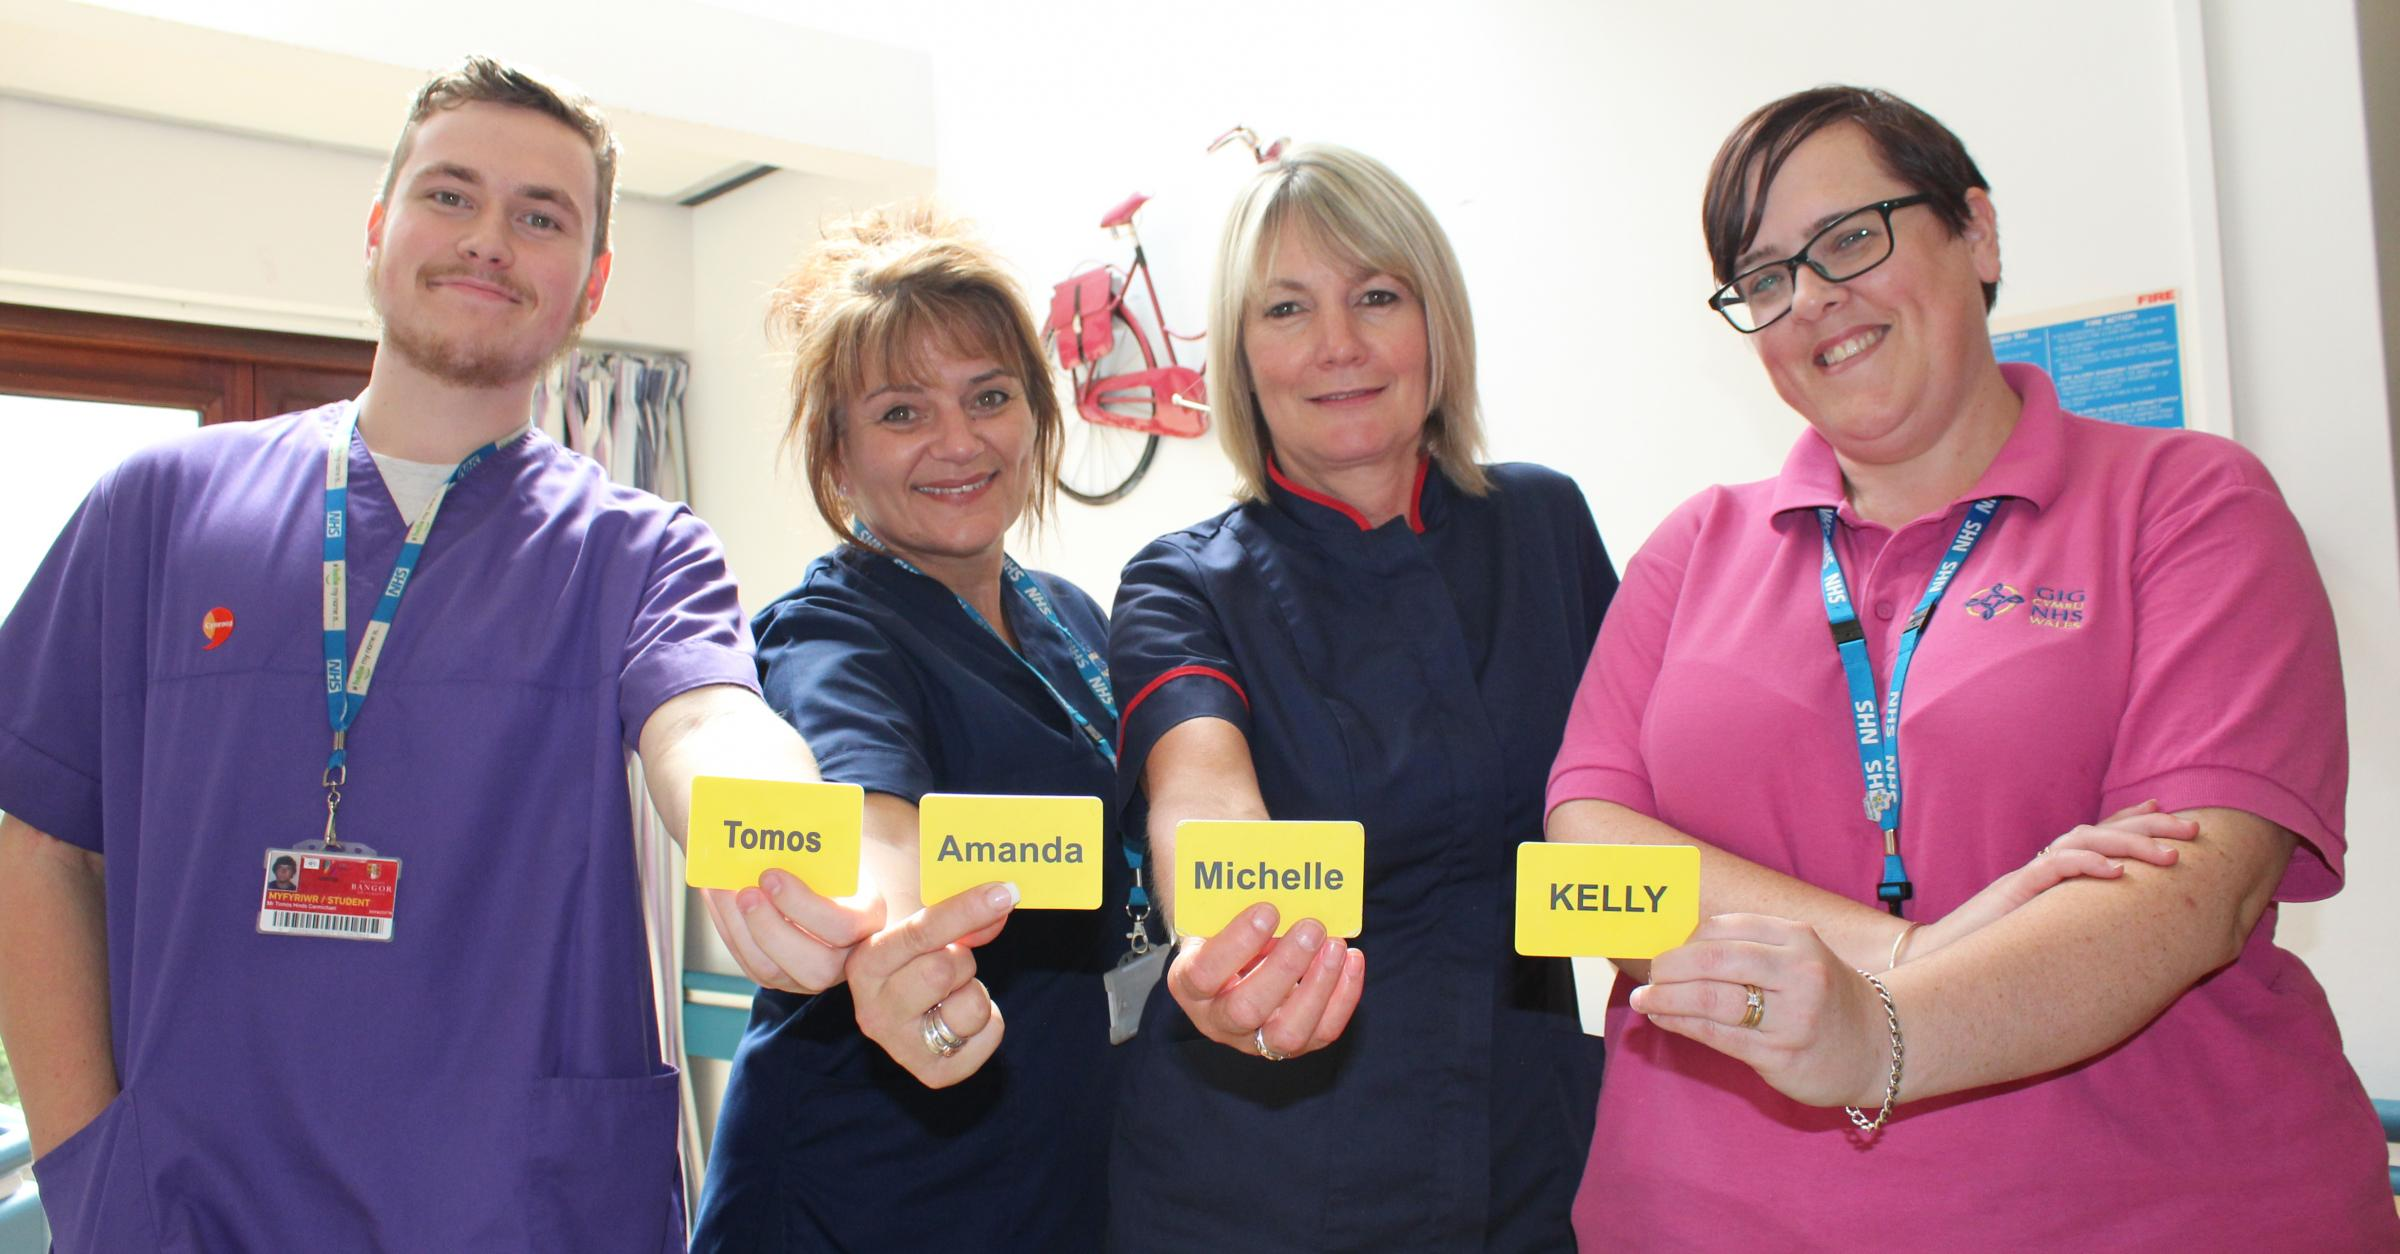 Staff on Cemlyn ward, where research took place, with the new badges